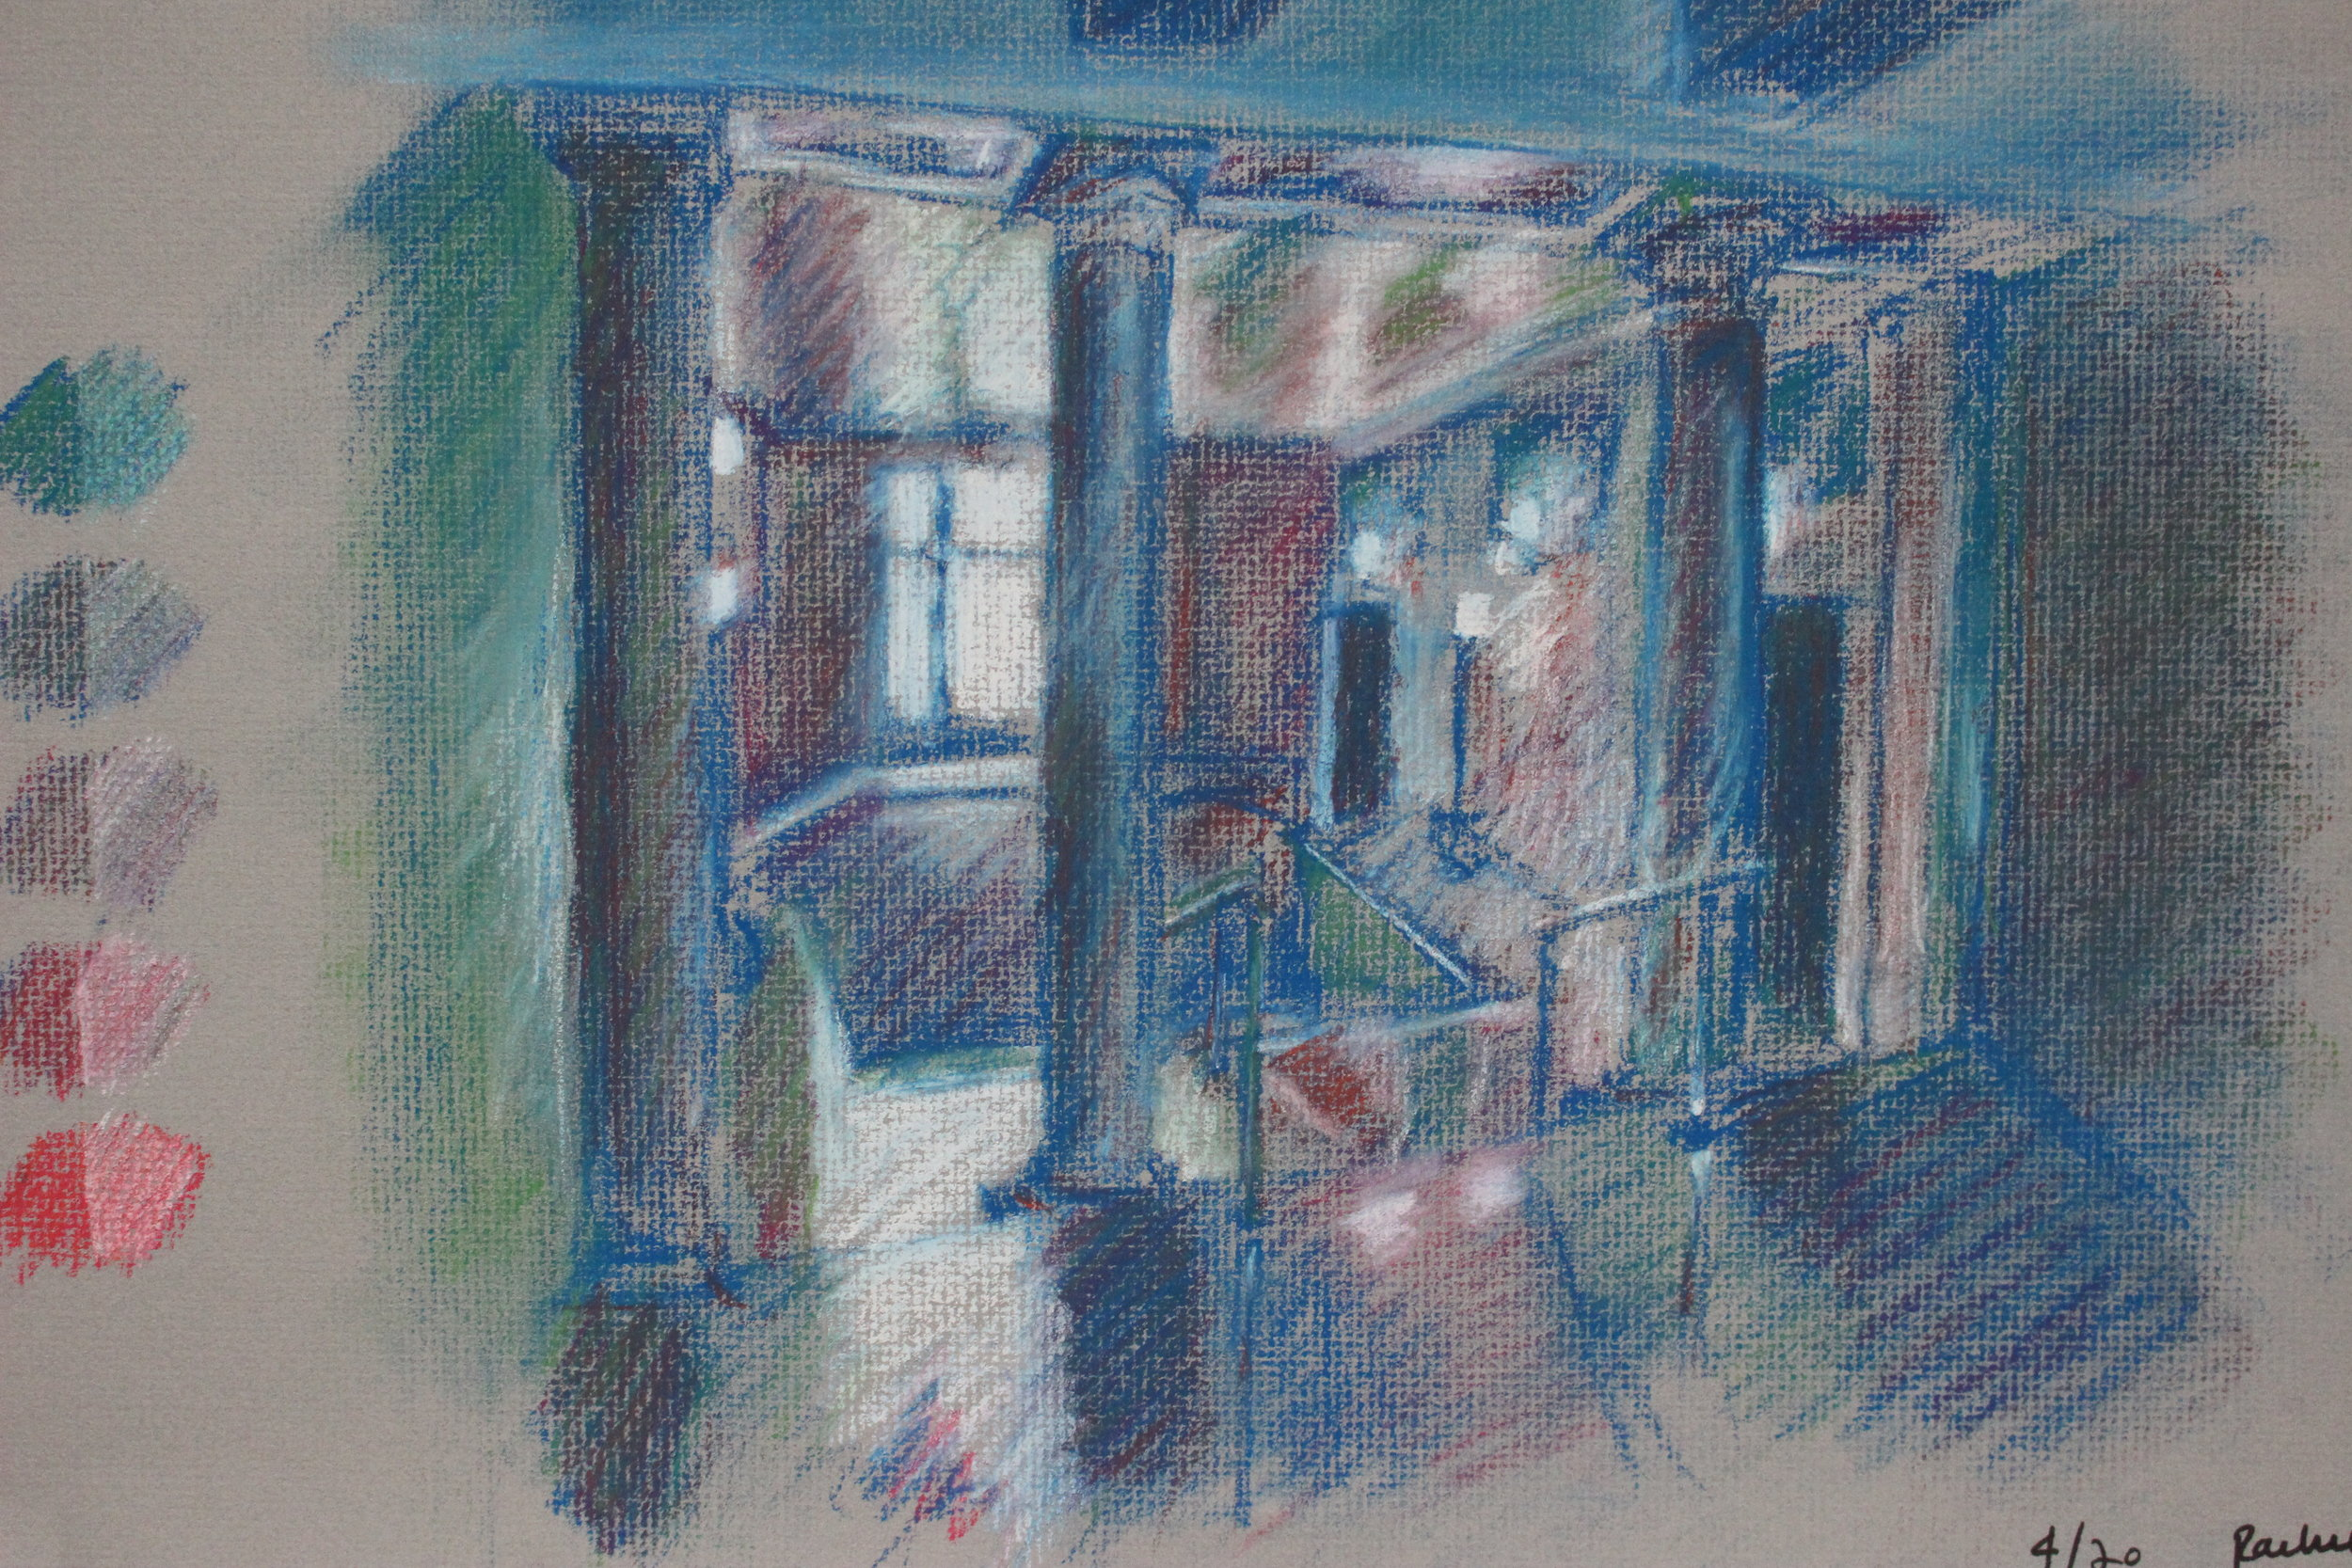 Interior color pastel study of College of Fine Arts space